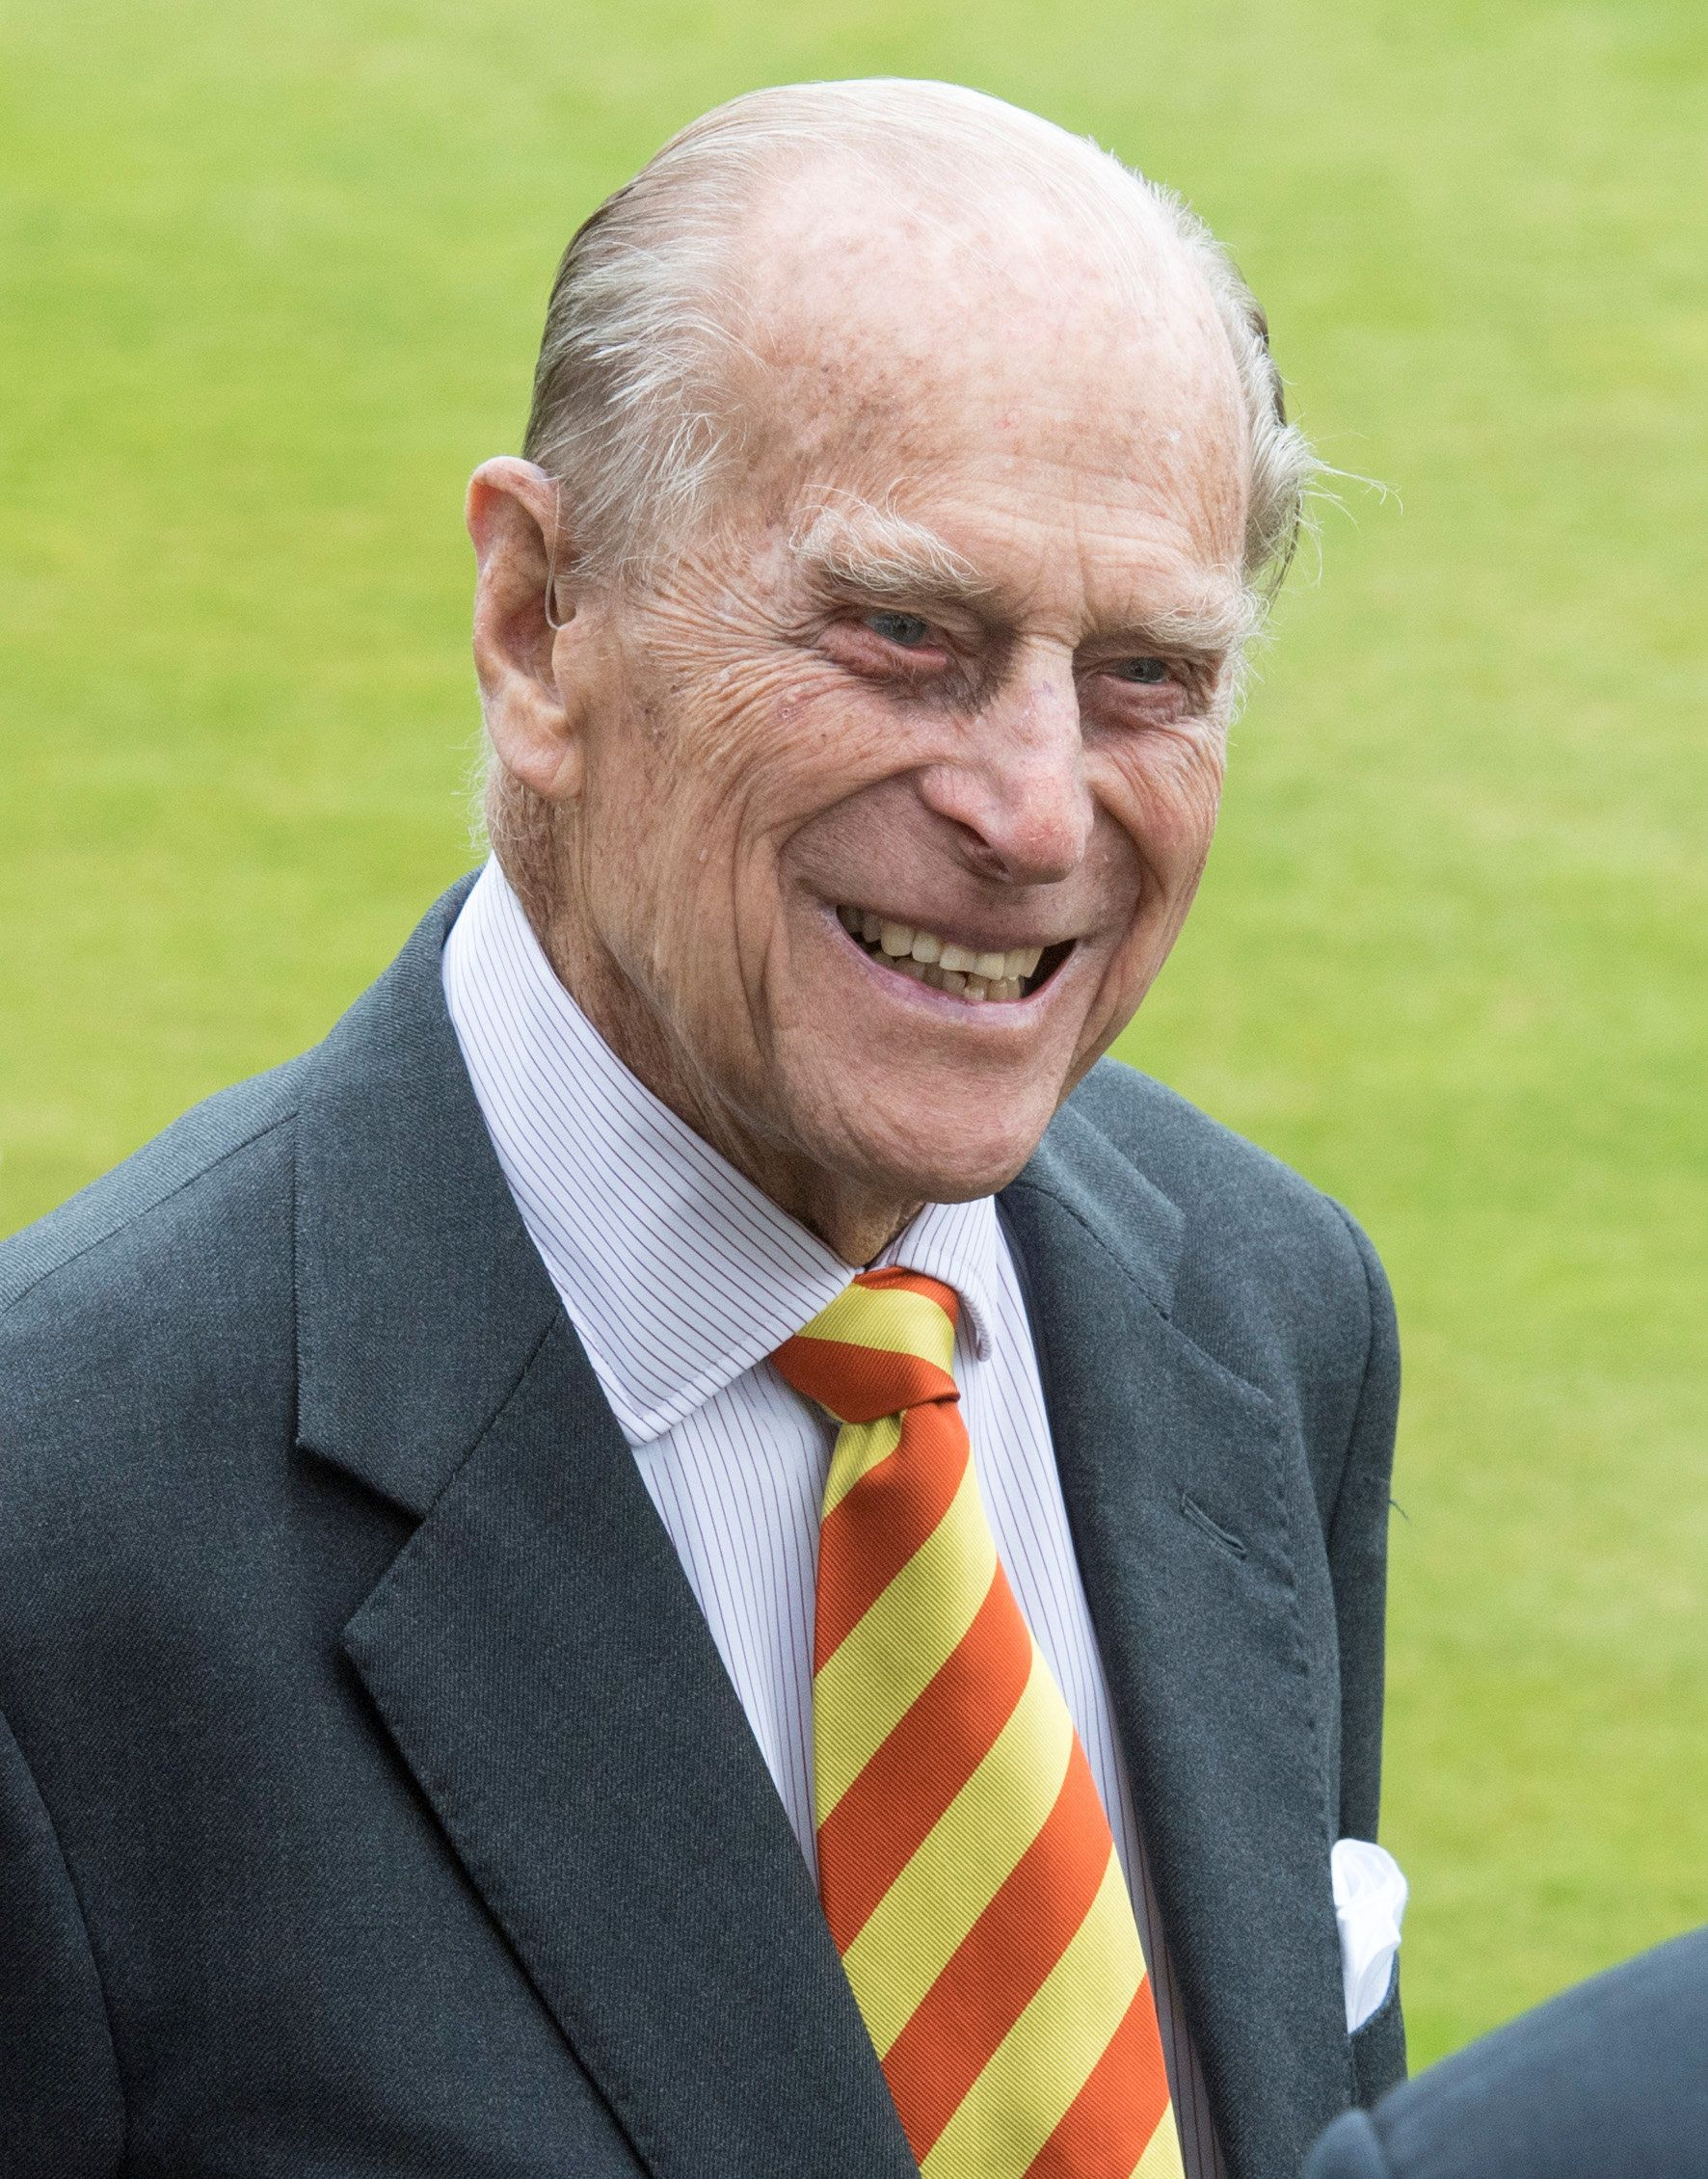 Britain's Prince Philip visits Lord's Cricket Ground where he opened the new Warner Stand, in London, May 3, 2017. REUTERS/Arthur Edwards/Pool